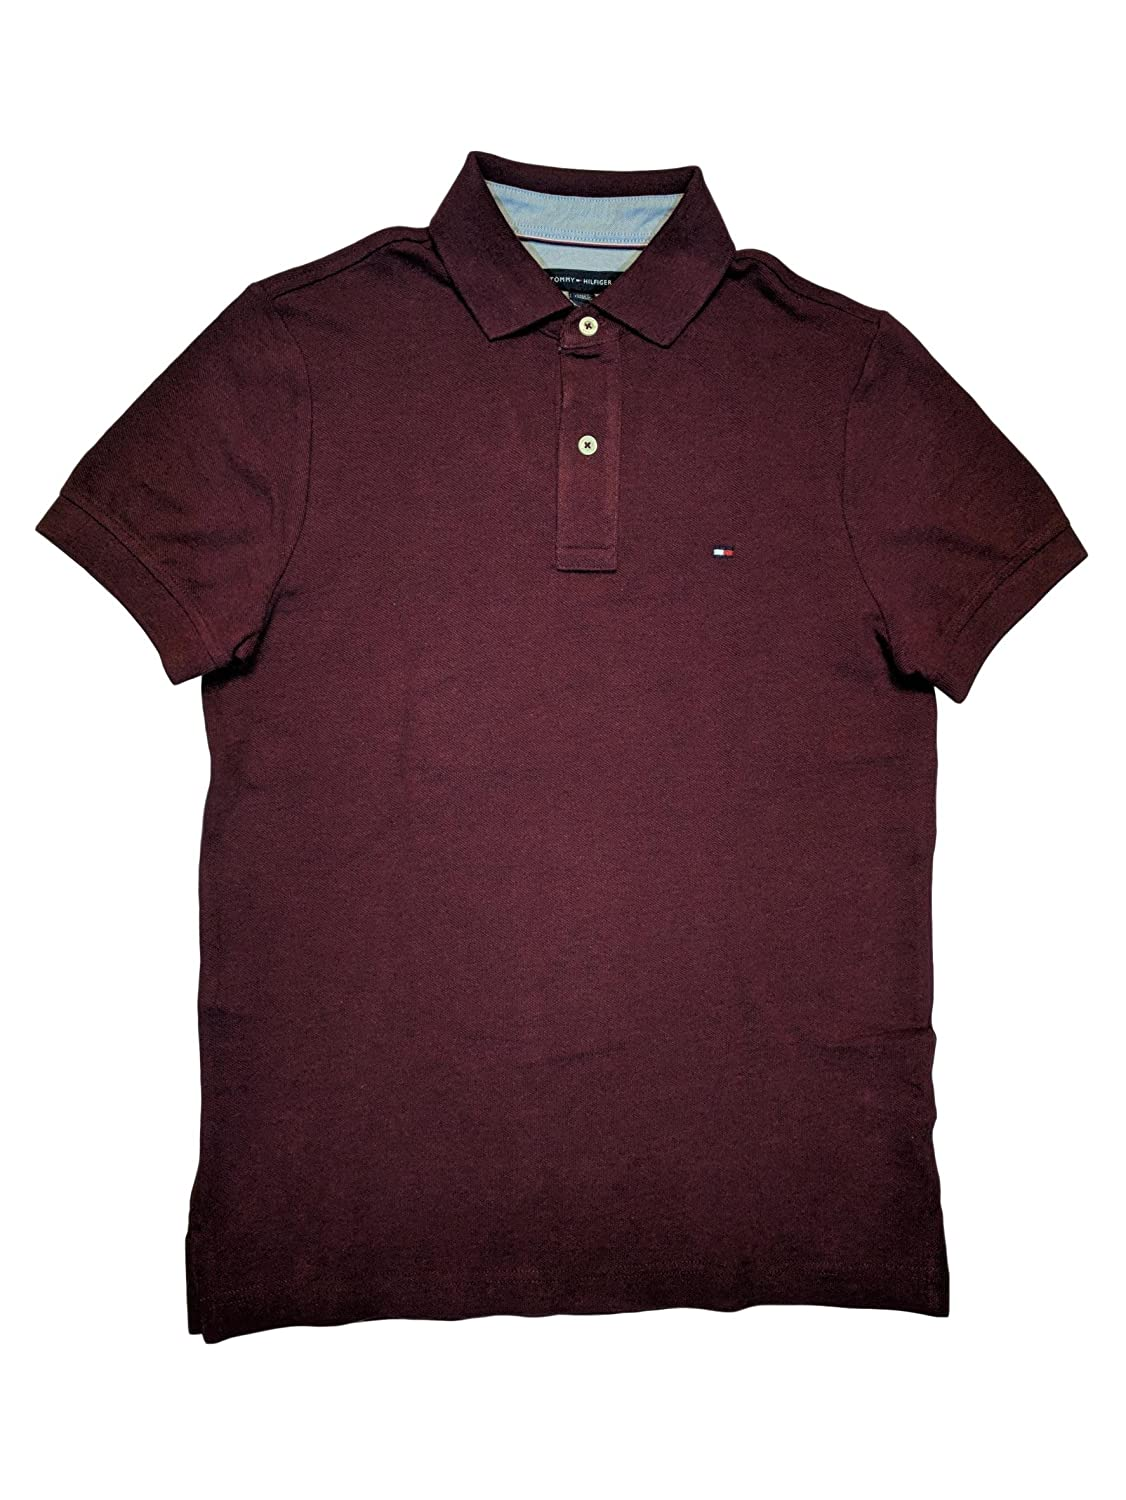 Tommy hilfiger mens custom fit solid color polo shirt at amazon tommy hilfiger mens custom fit solid color polo shirt at amazon mens clothing store geenschuldenfo Image collections